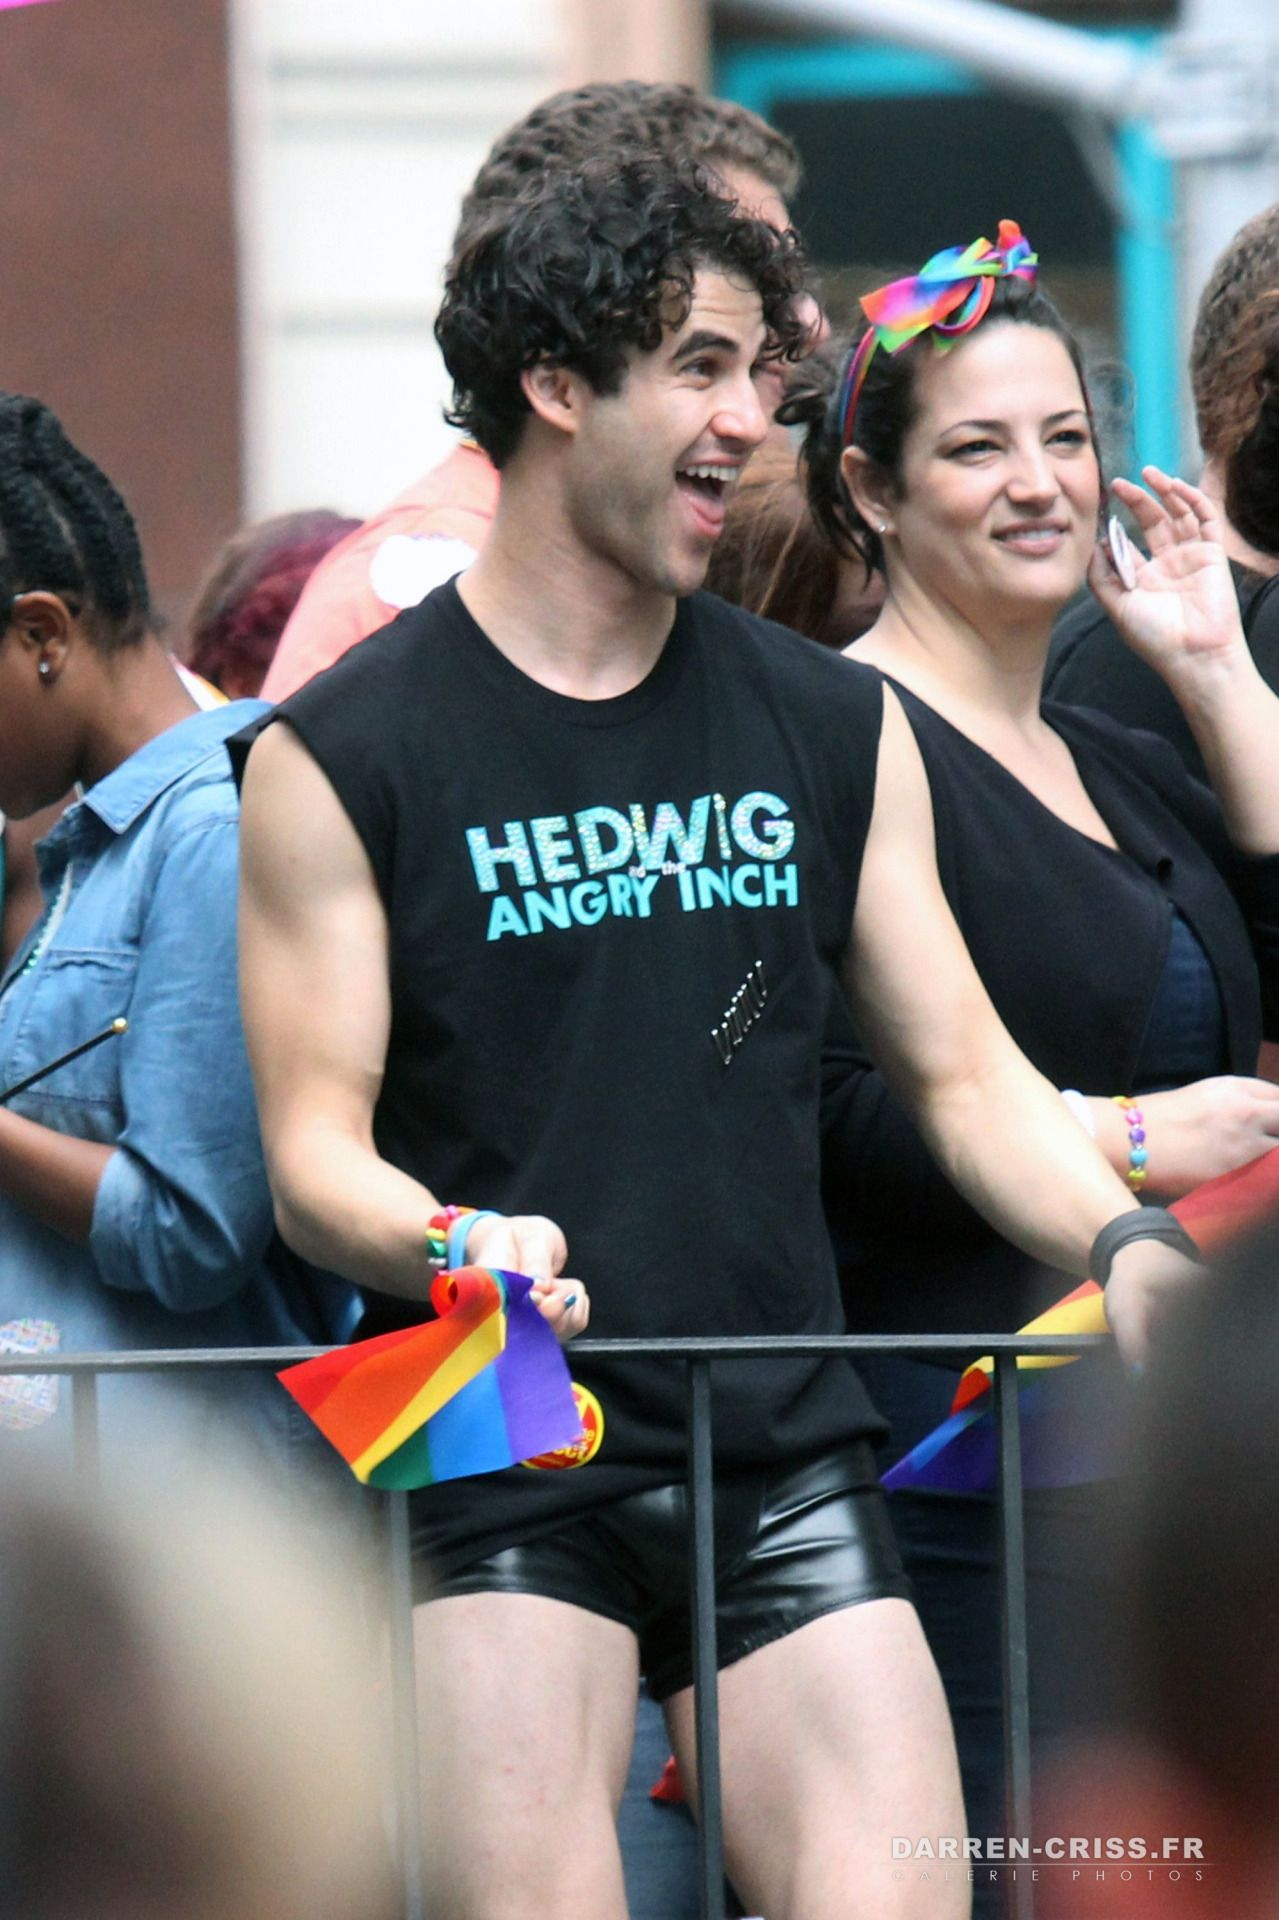 Darren Criss In The 2015 Lgbt Gay Pride March In New York